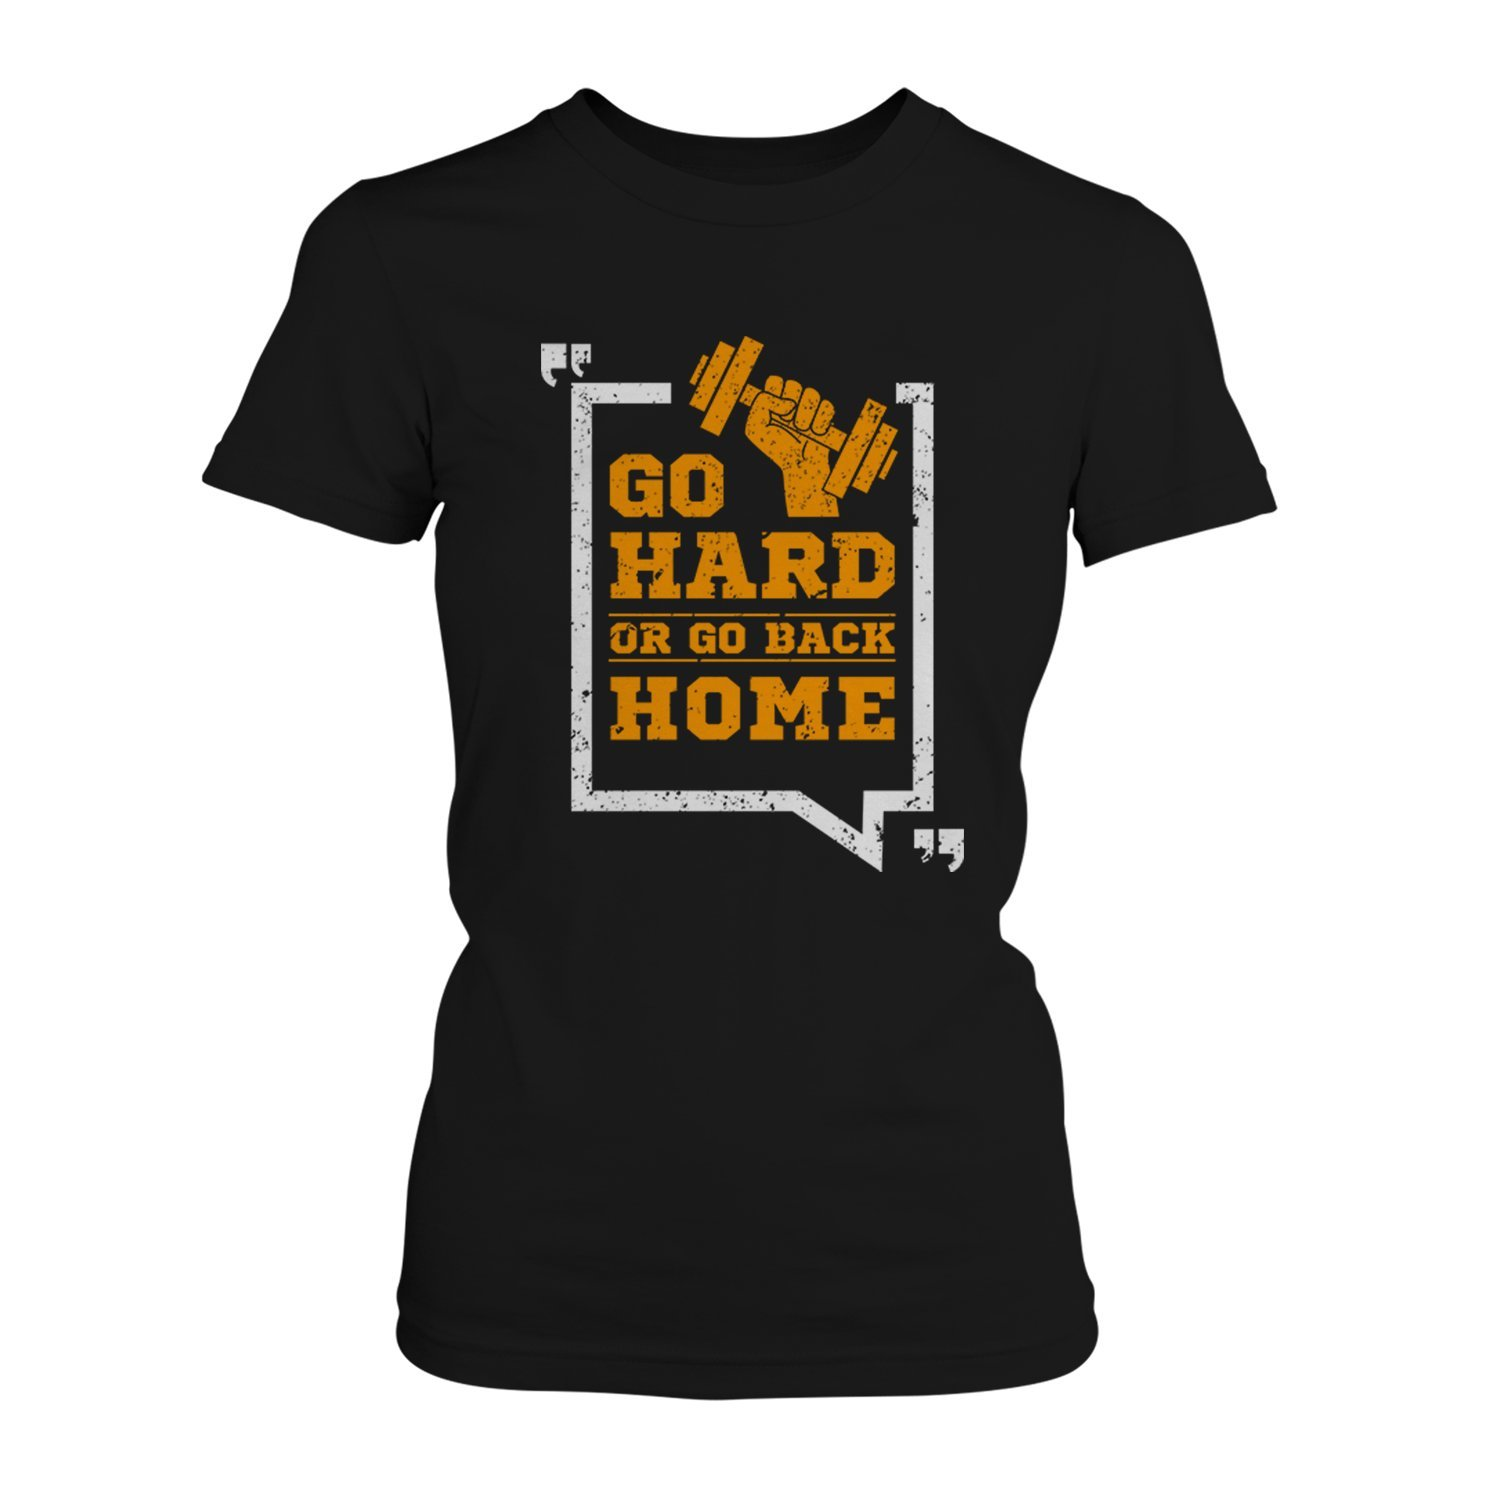 Go Hard Or Back Home Damen T-Shirt Fun Shirt Spruch Sport Training Body Building